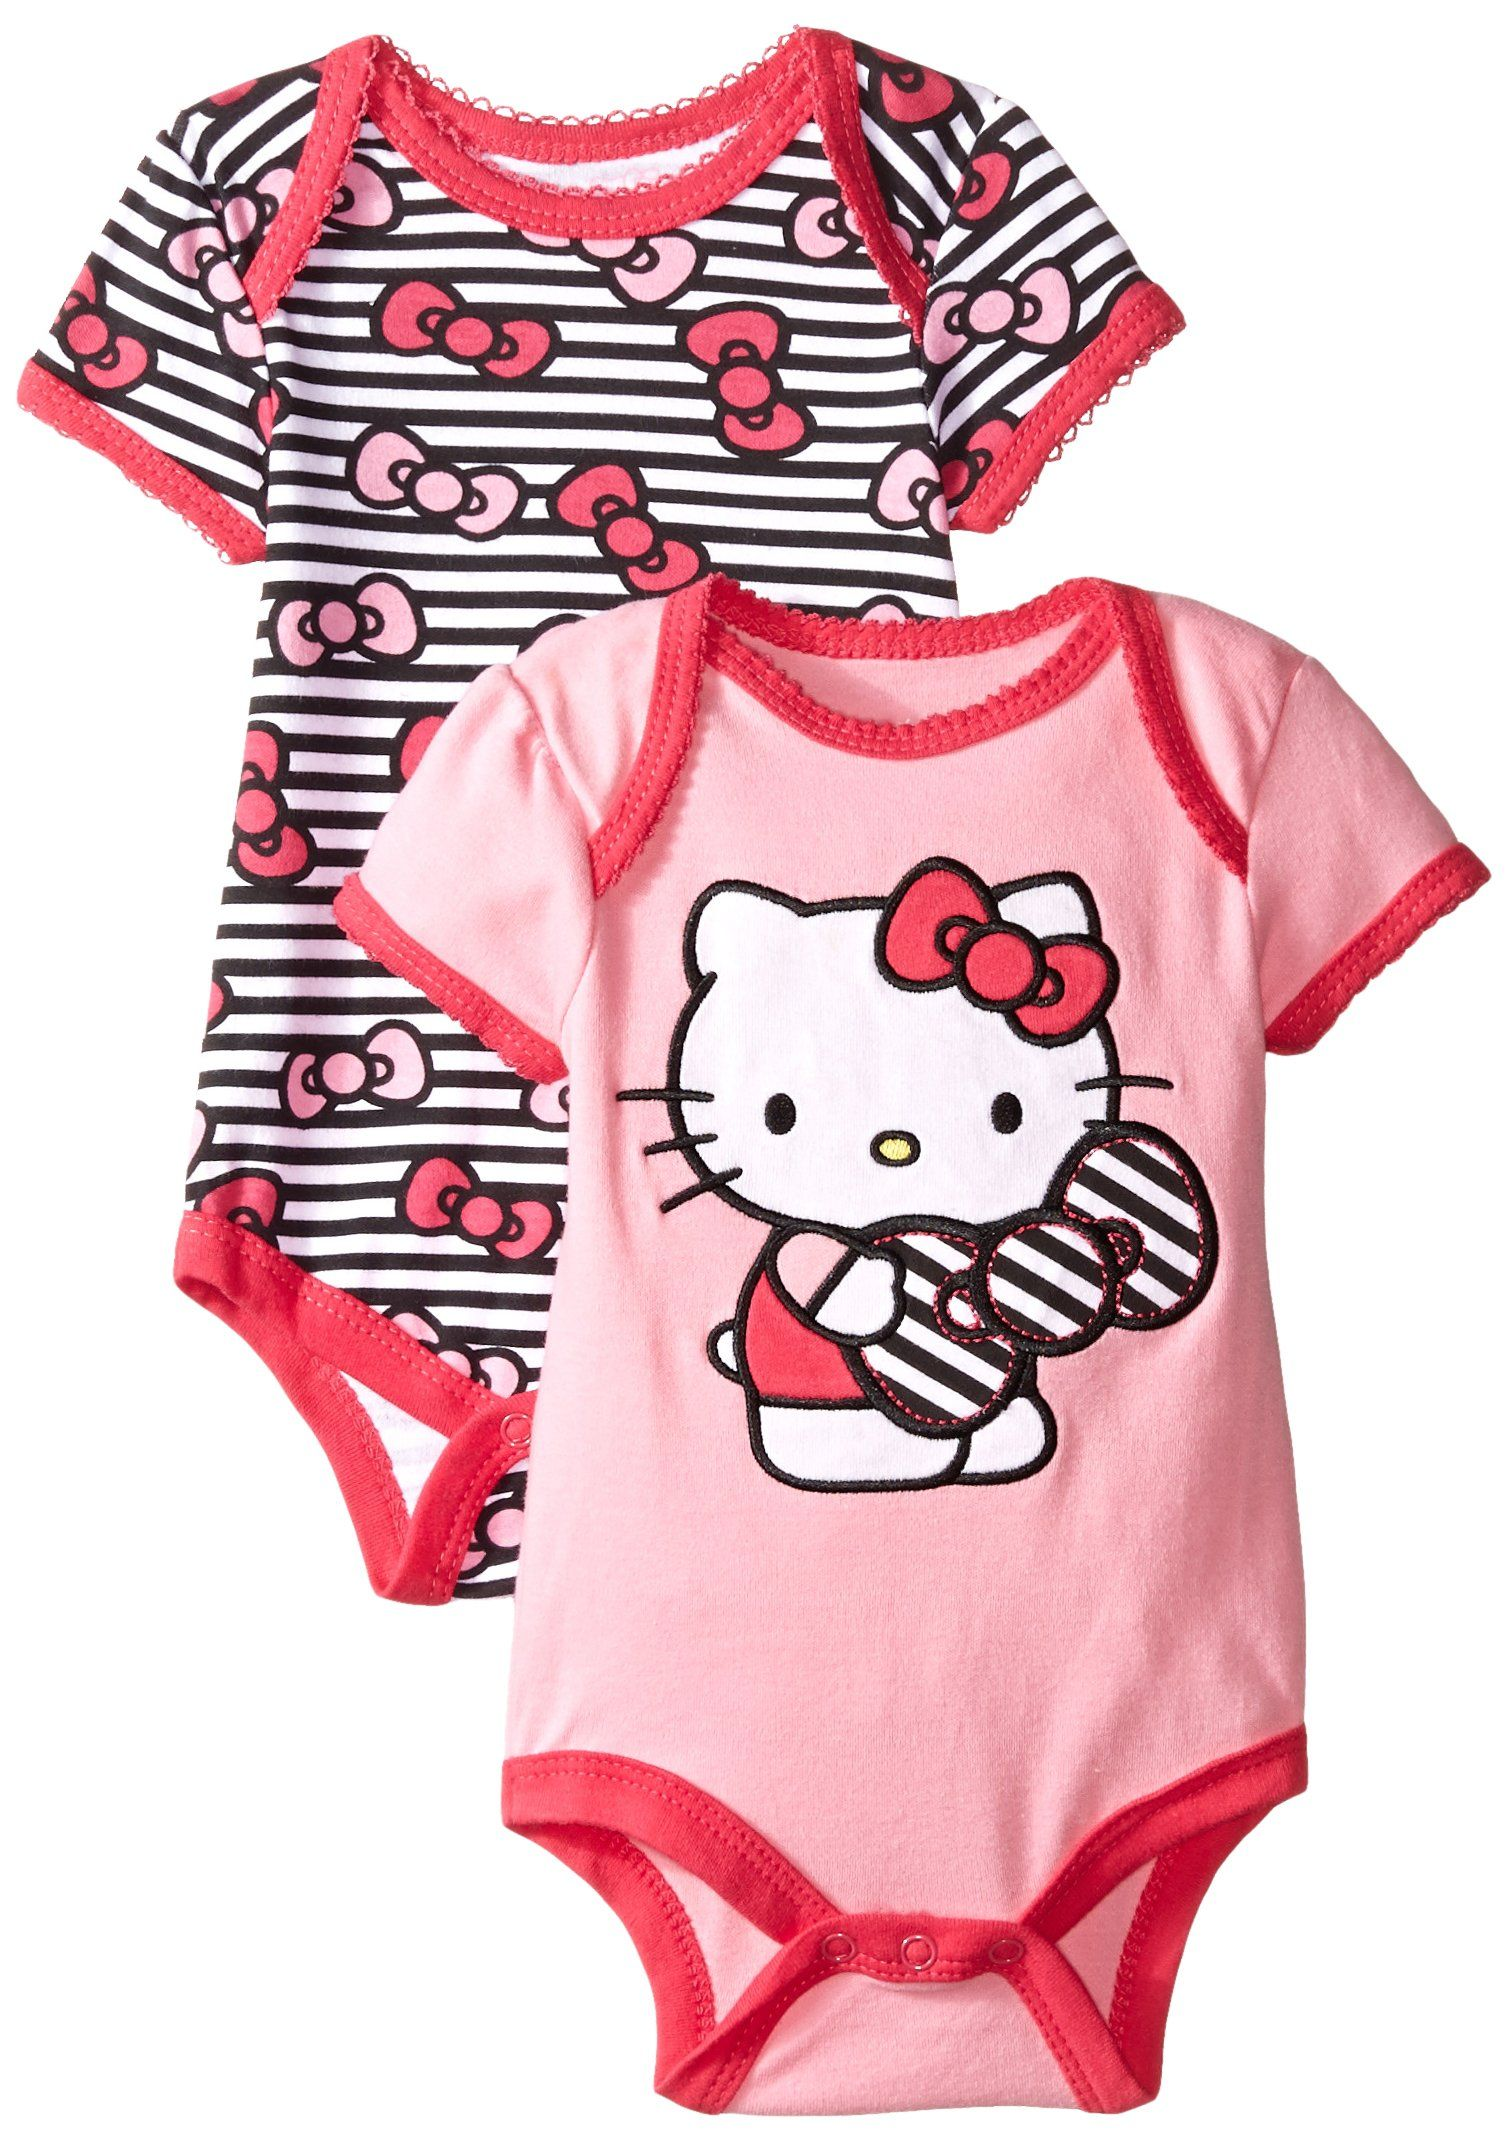 582401f89 Amazon.com: Hello Kitty Baby-Girls Newborn Love 2 Pack Bodysuit: Clothing